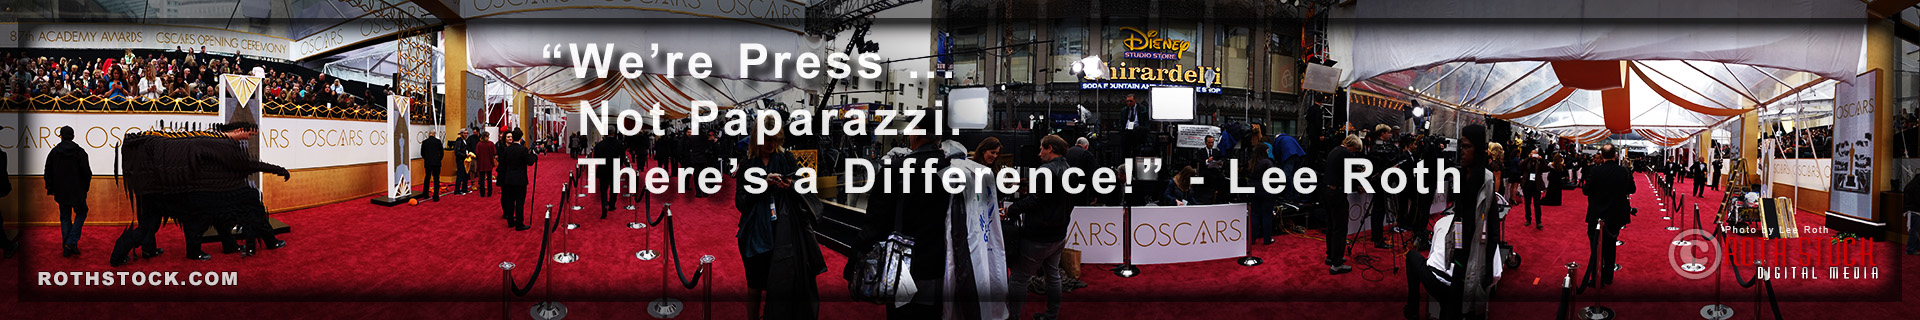 Roth Stock Digital Media - We're Press, Not Paparazzi. There's a Difference!